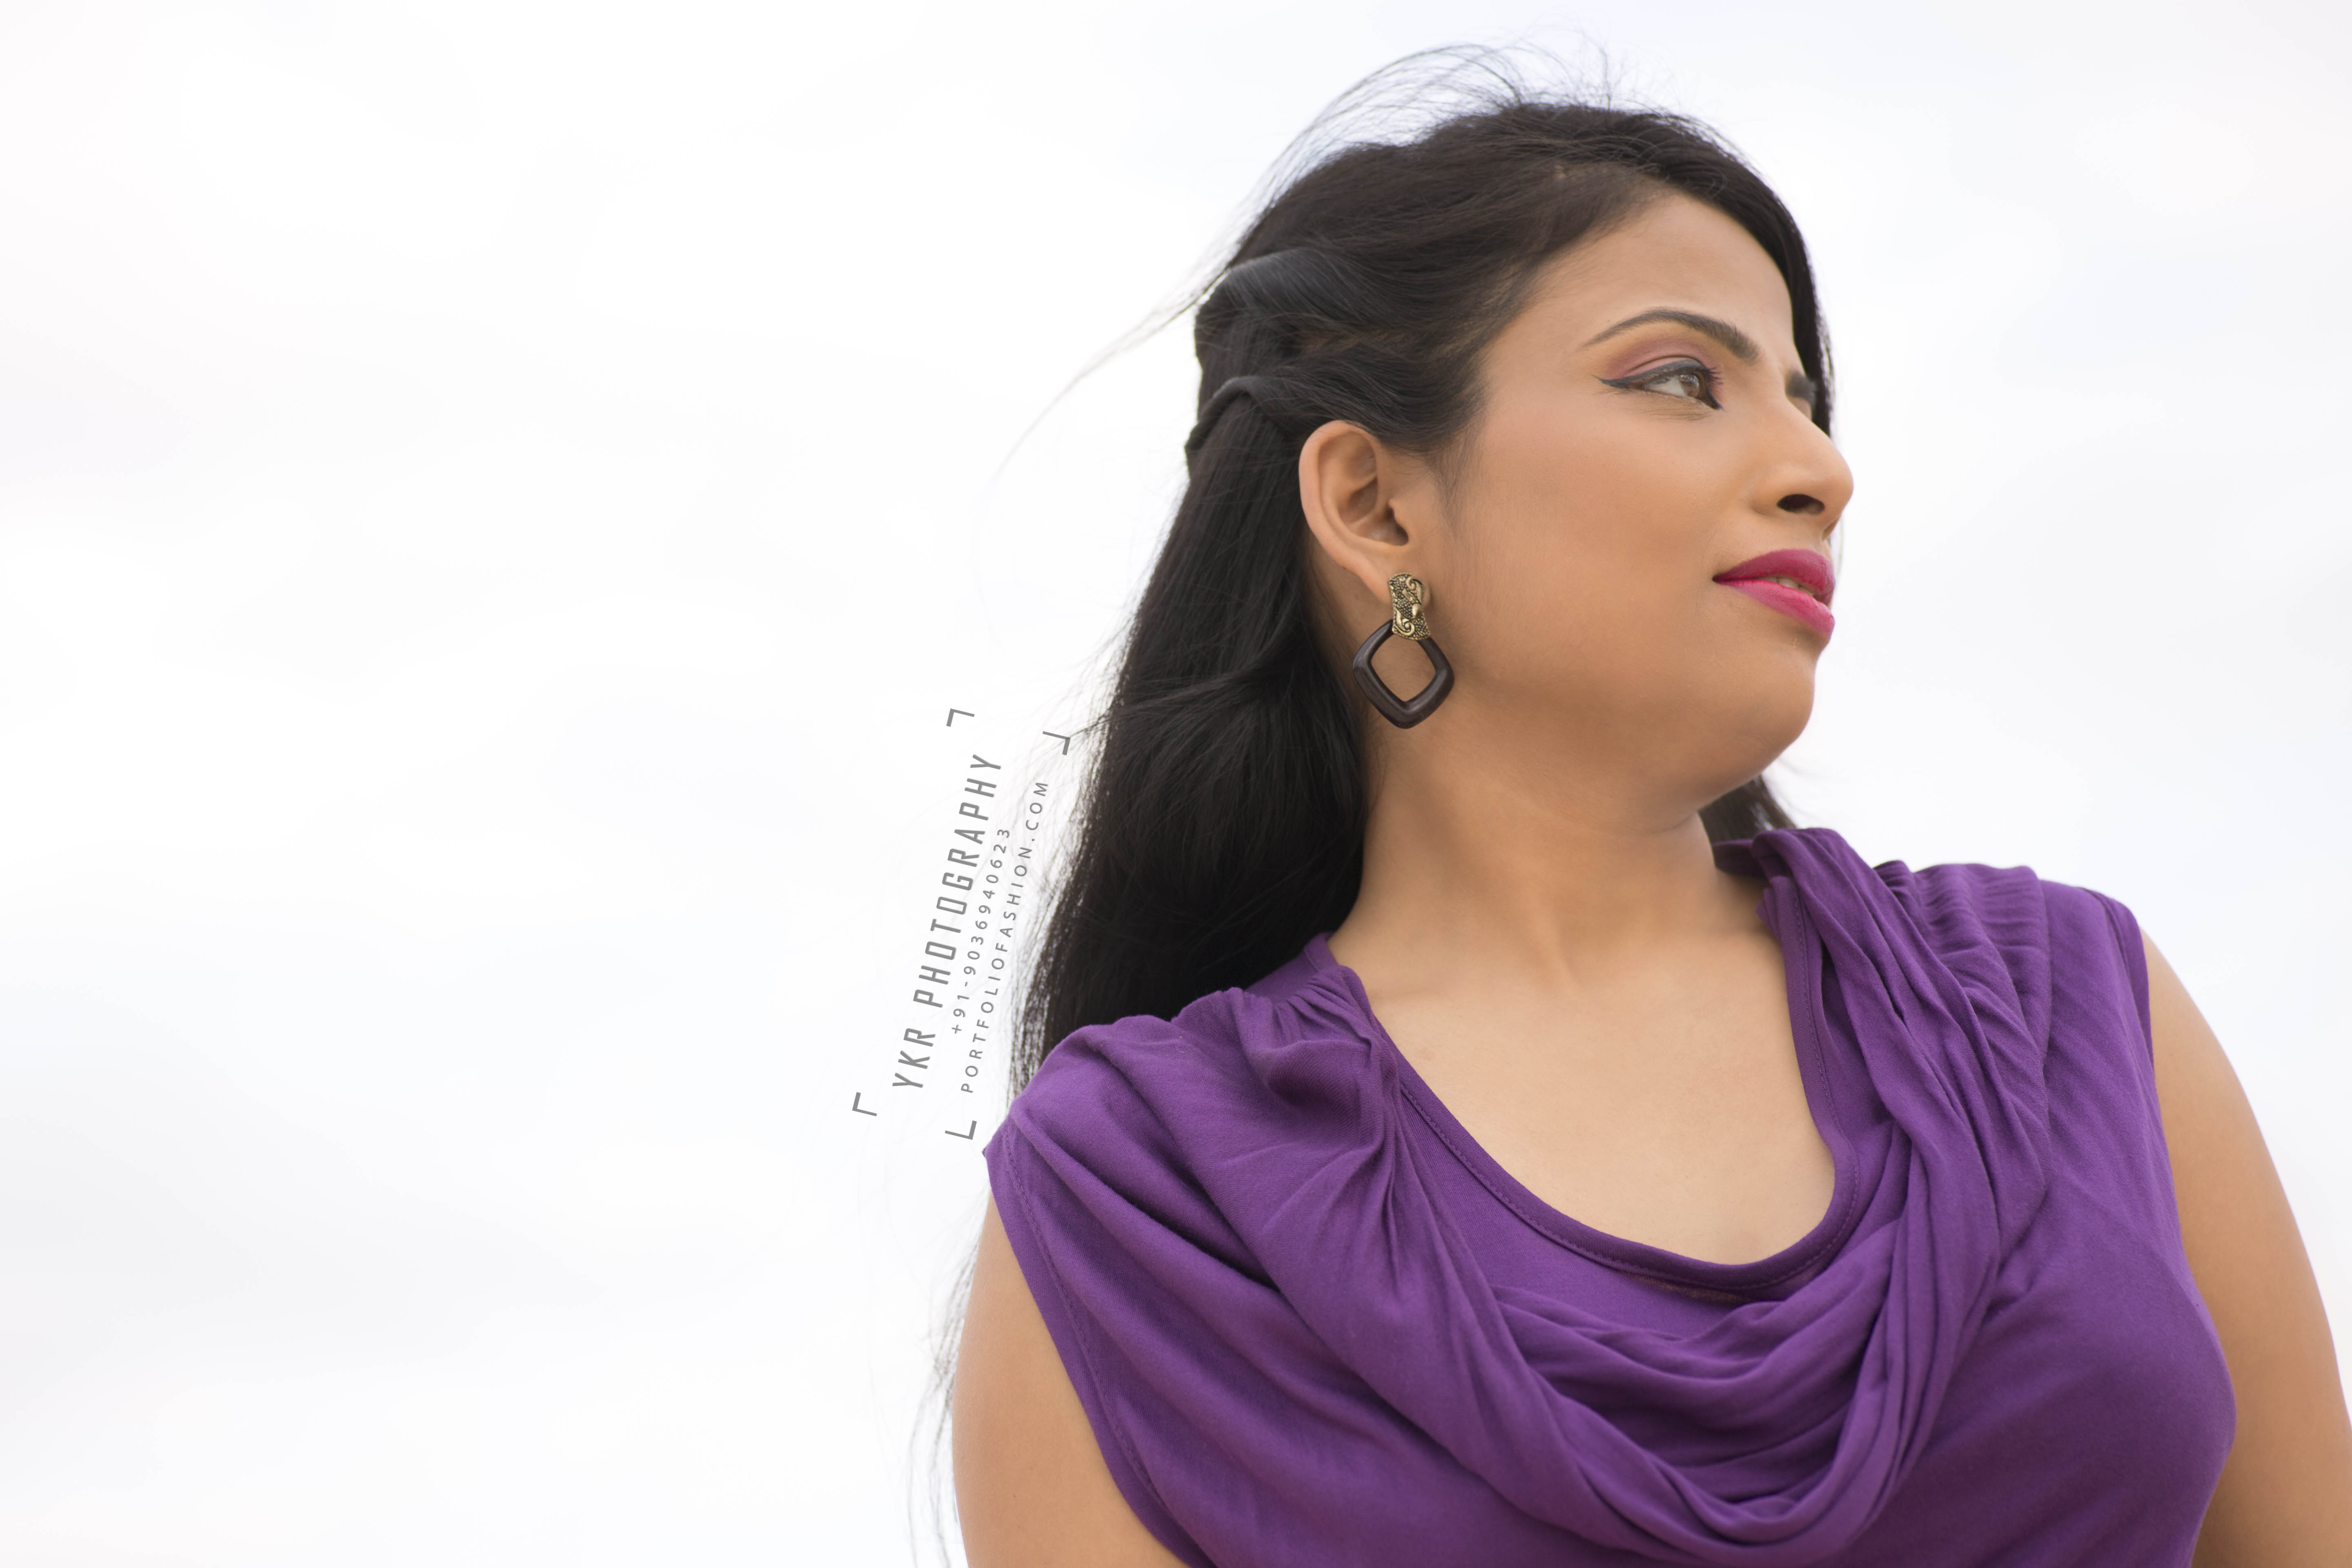 FEmale modeling in bangalore